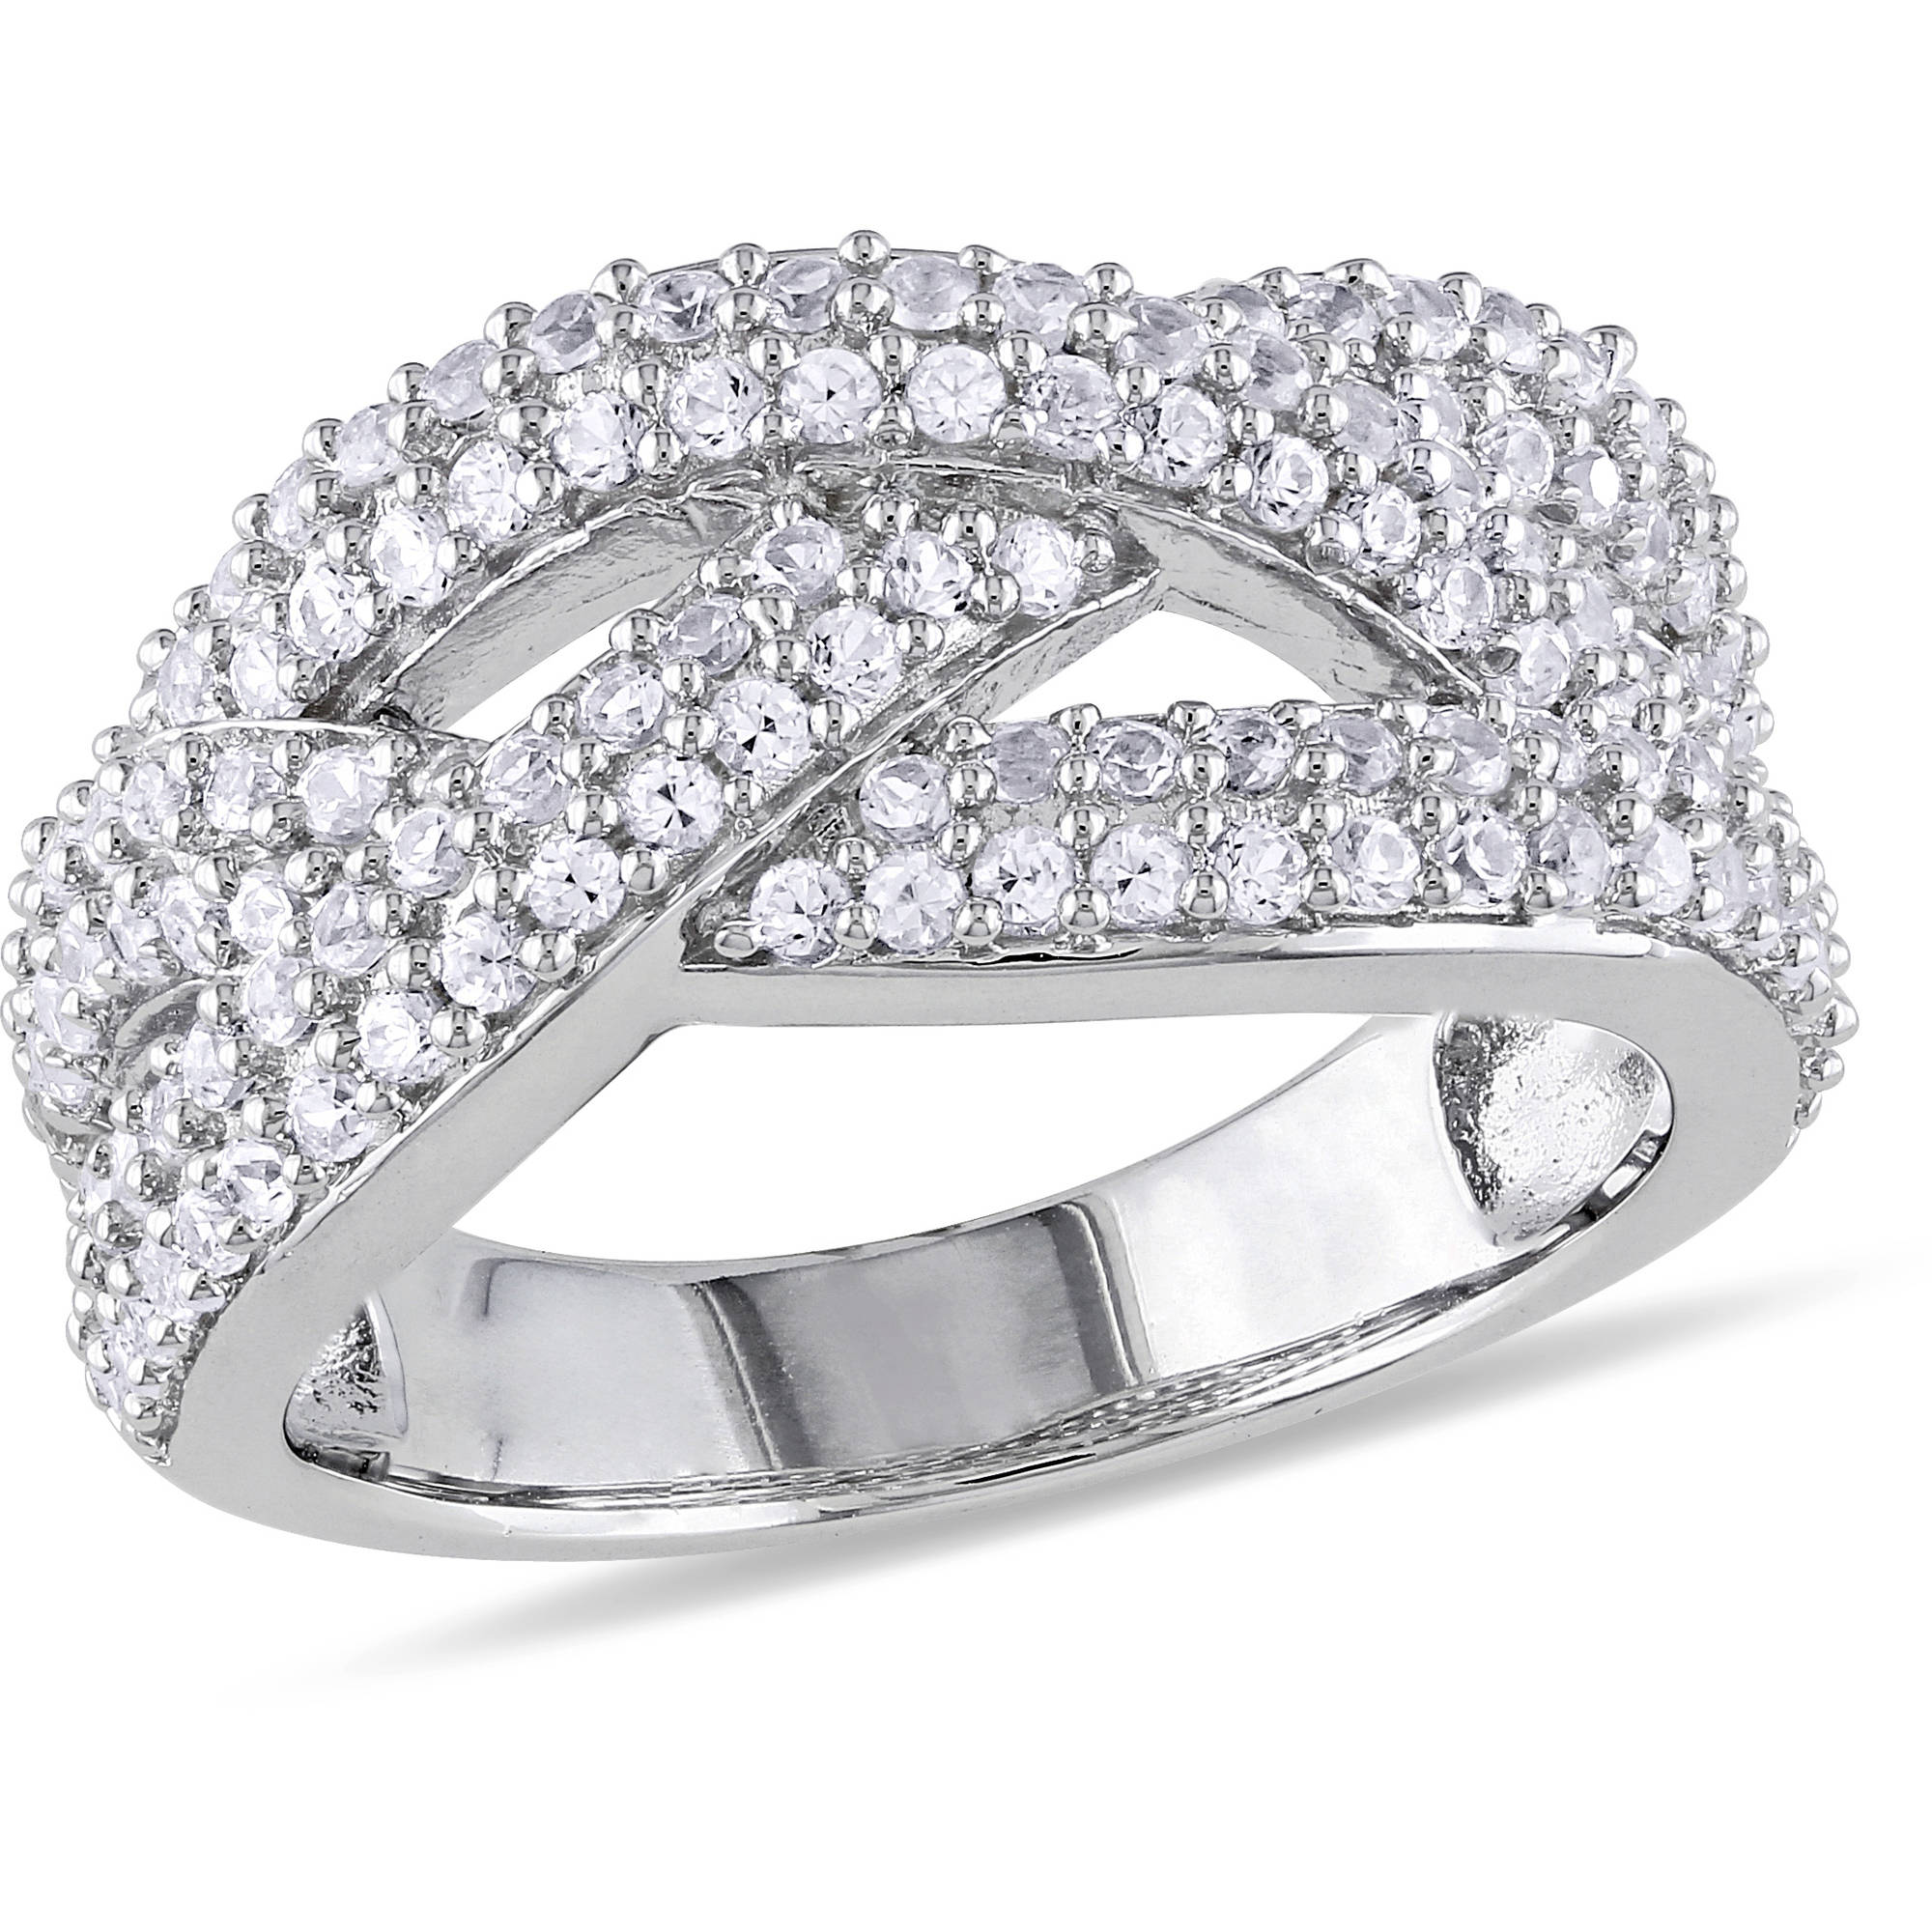 Miabella 1-1/4 Carat T.G.W. White Sapphire Sterling Silver Cross-Over Ring